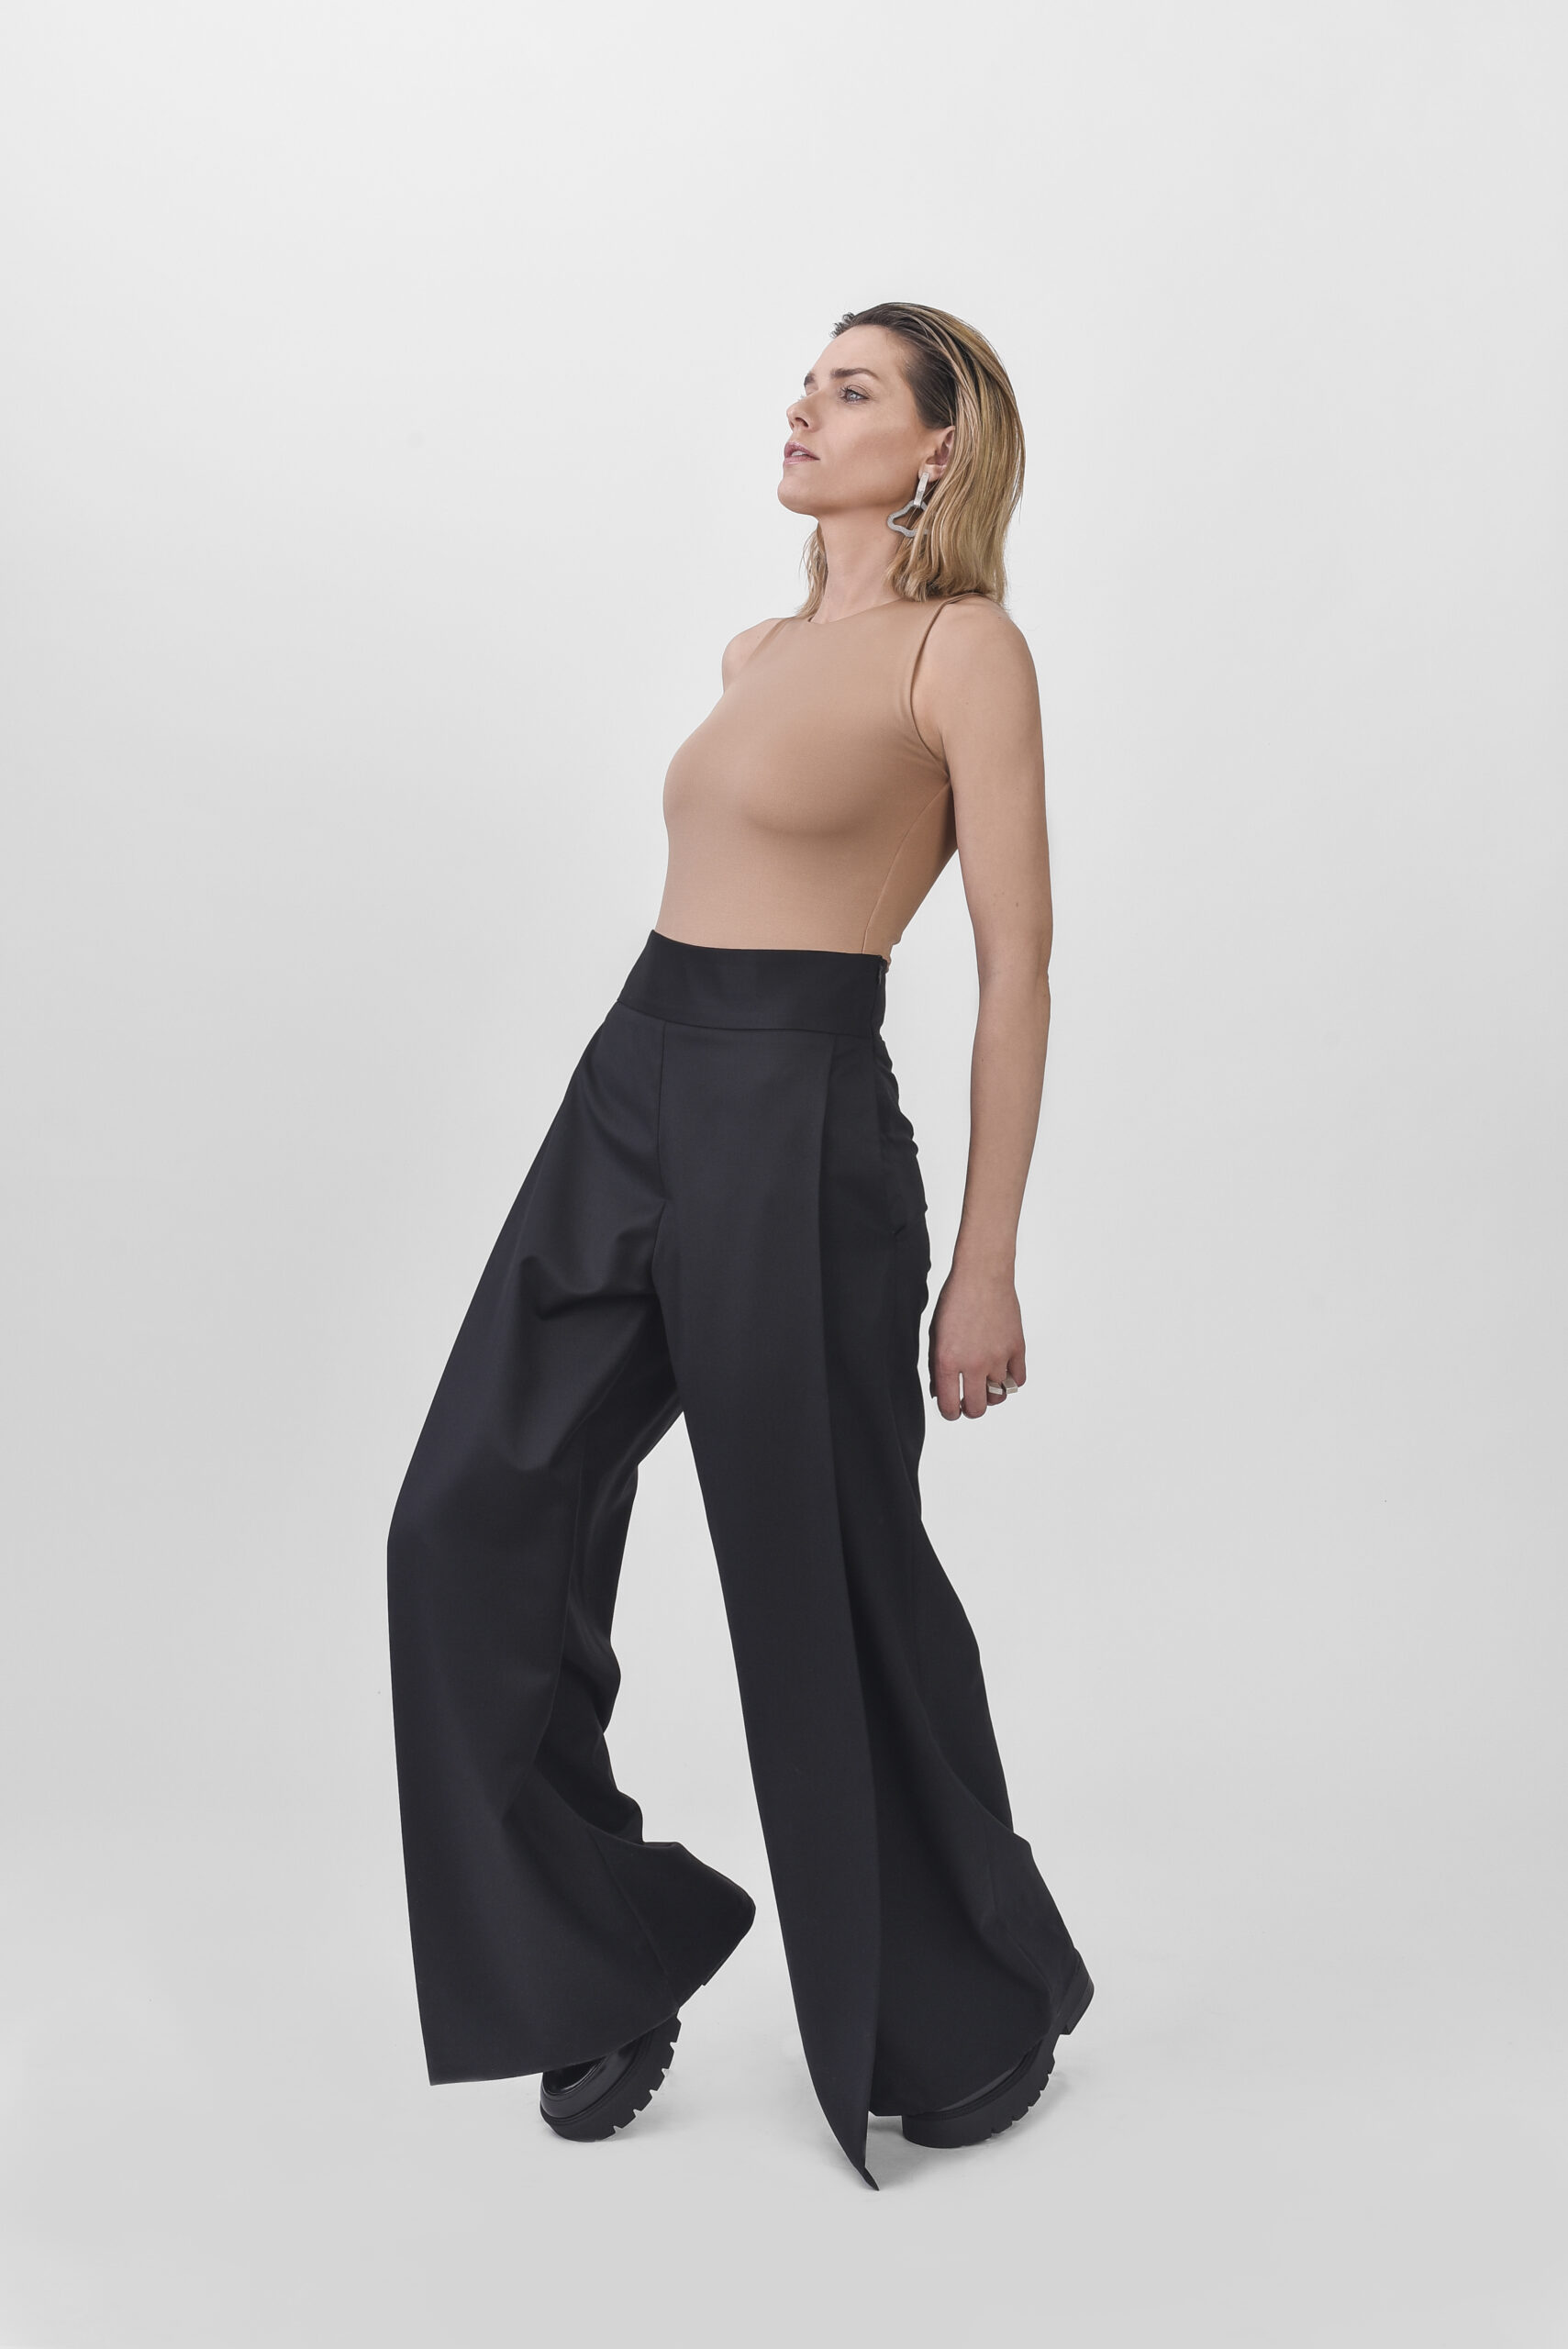 Model with black wide leg trousers